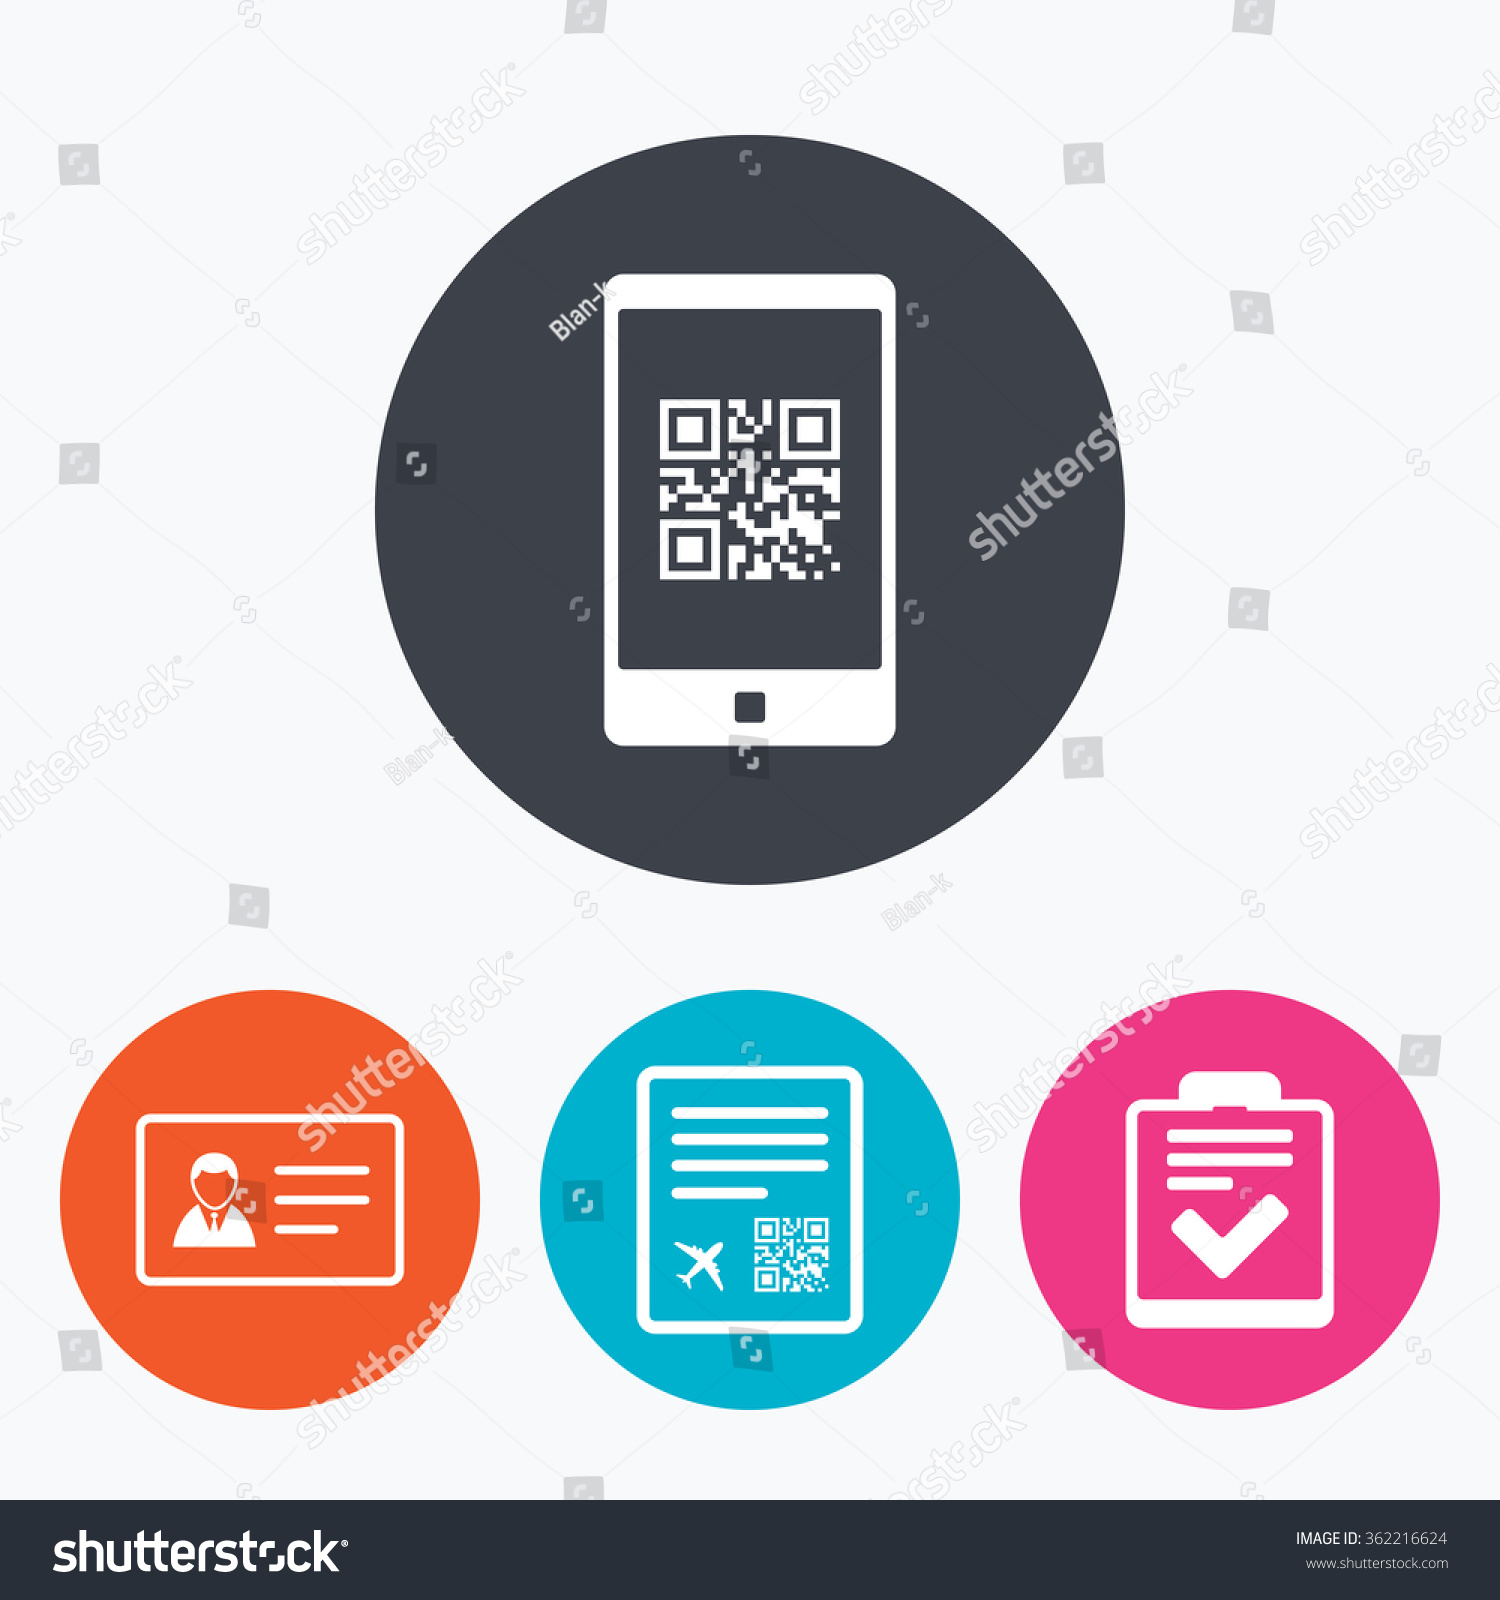 Qr Scan Code Smartphone Icon Boarding Stock Vector Royalty Free